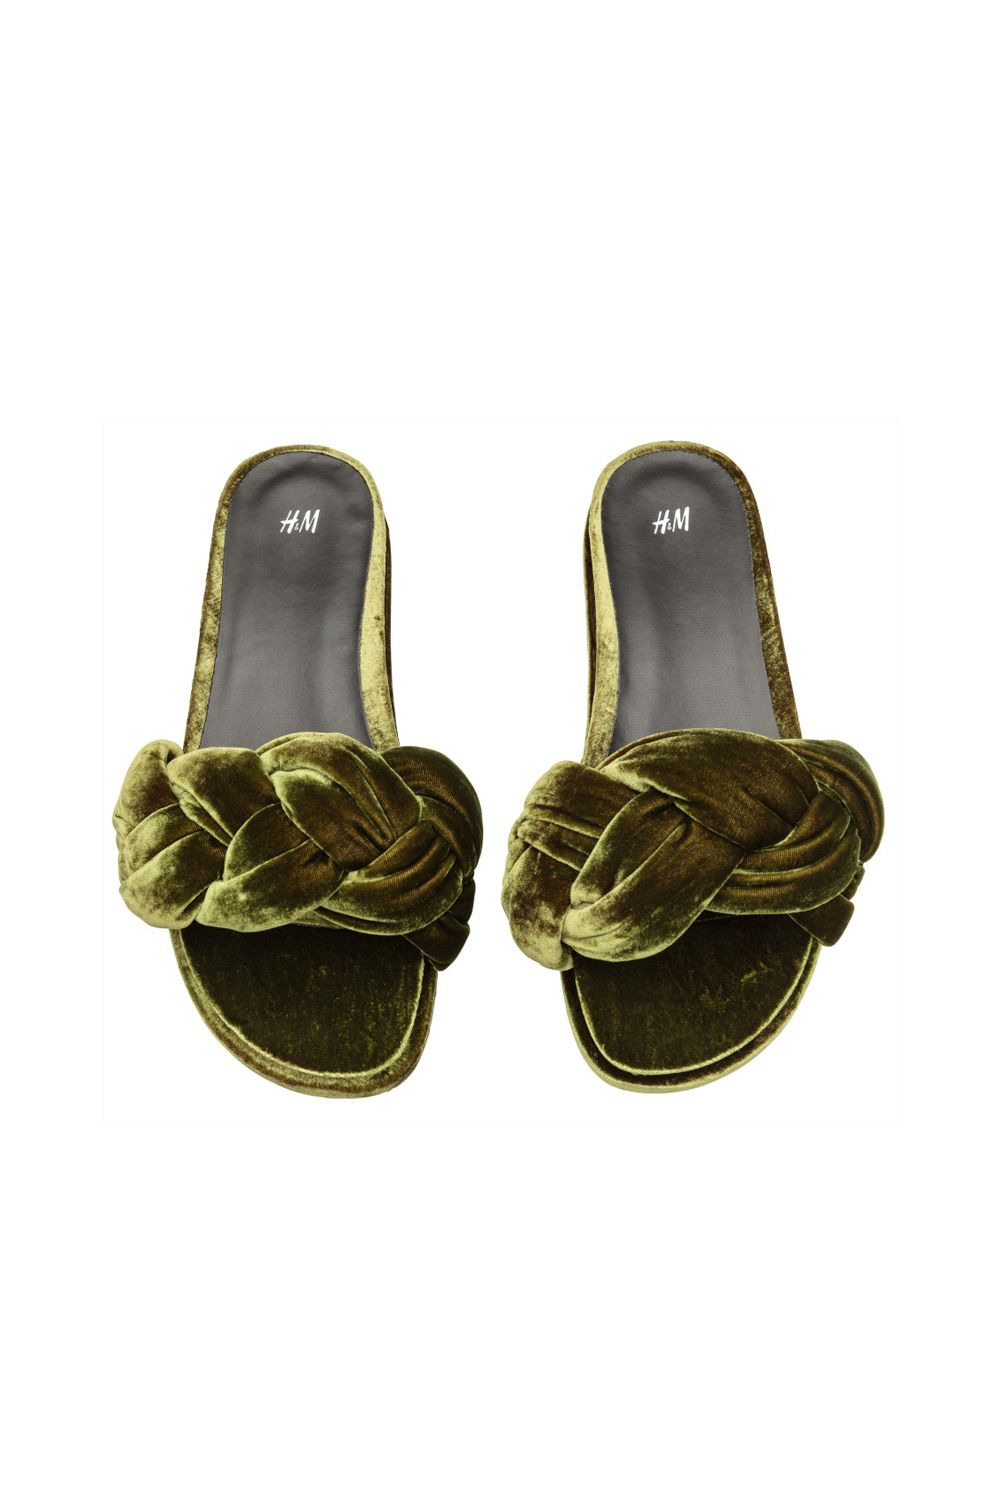 "<p>The sort of braided khaki green crushed velvet pool slides Bruno Mars would wear. (This is a good thing.)</p><p>H&M, $30; <a href=""http://www.hm.com/us/product/67958?article=67958-A"" target=""_blank"" data-tracking-id=""recirc-text-link"">hm.com</a>.</p>"